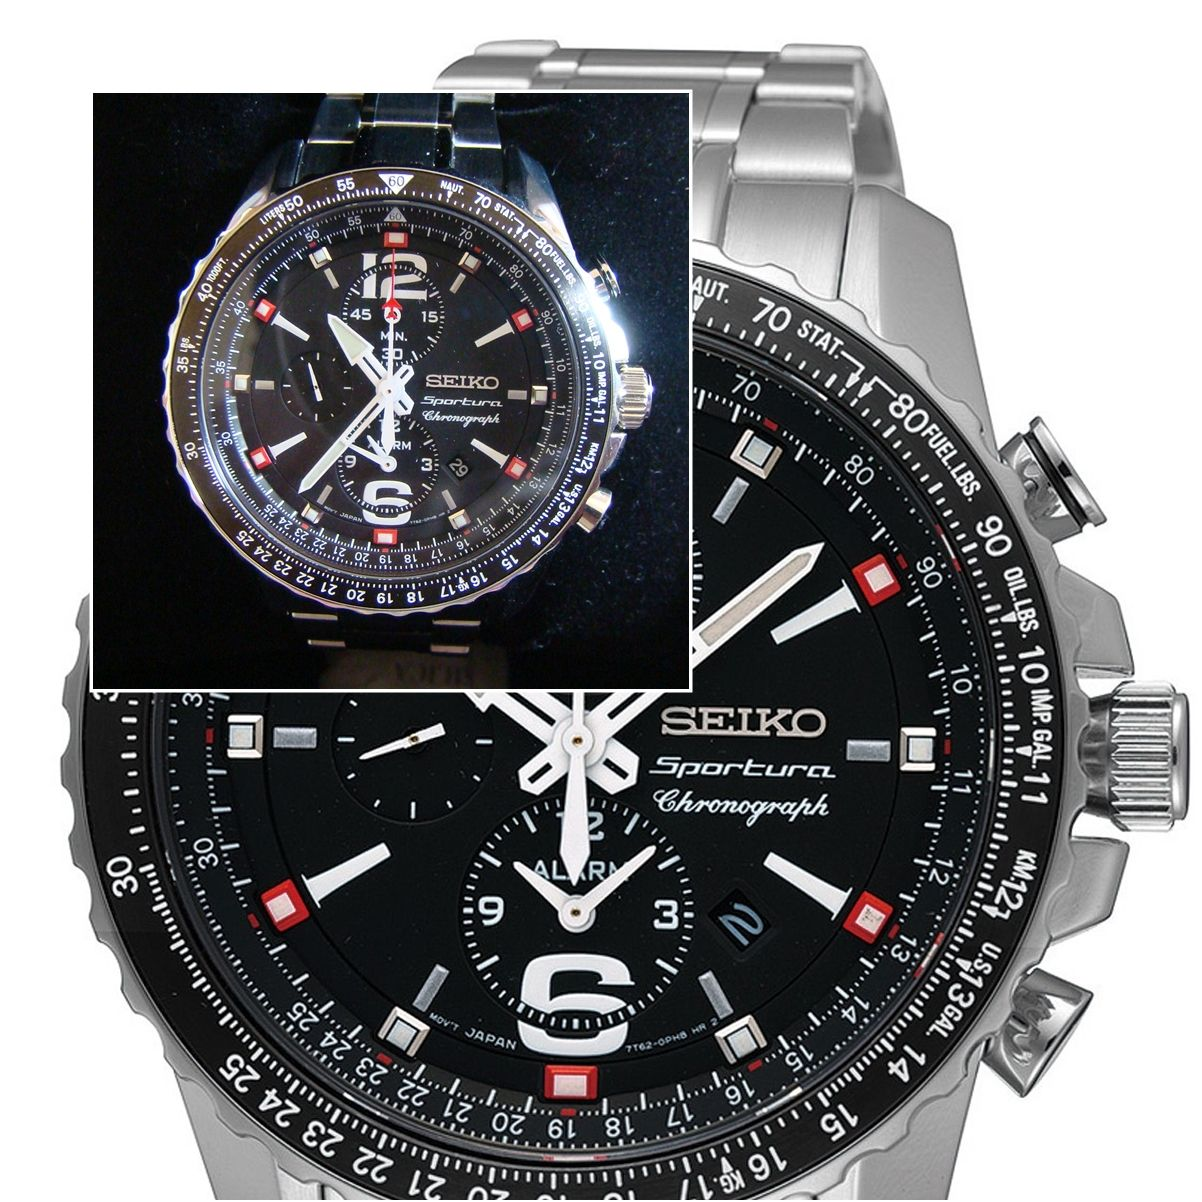 SEIKO Sportura Pilot's Watch 2000s  In the reality & commercials